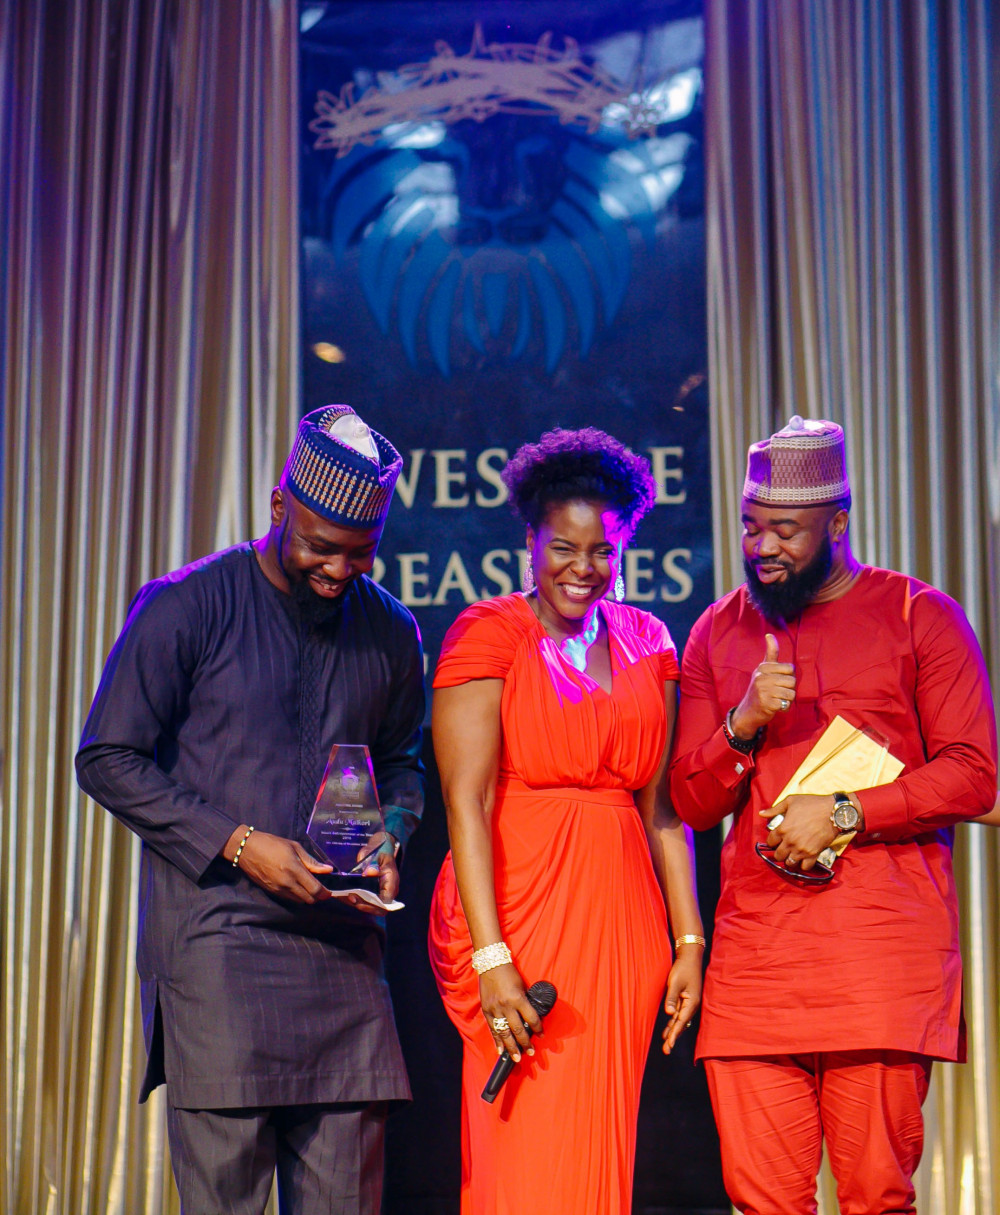 paul-okeugo-mrs-olajumoke-adenowo-audu-maikori-at-the-awesome-awards